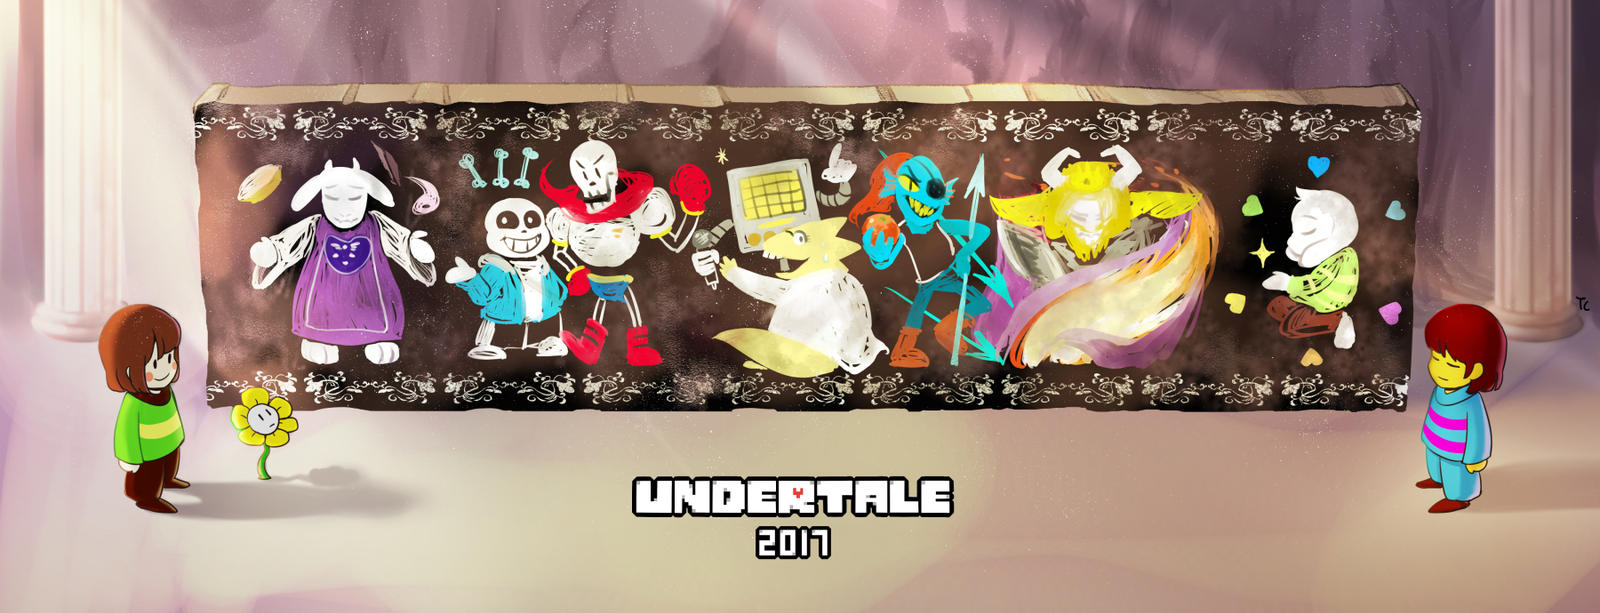 Undertale Anniversary 2017 by Triangle-cat